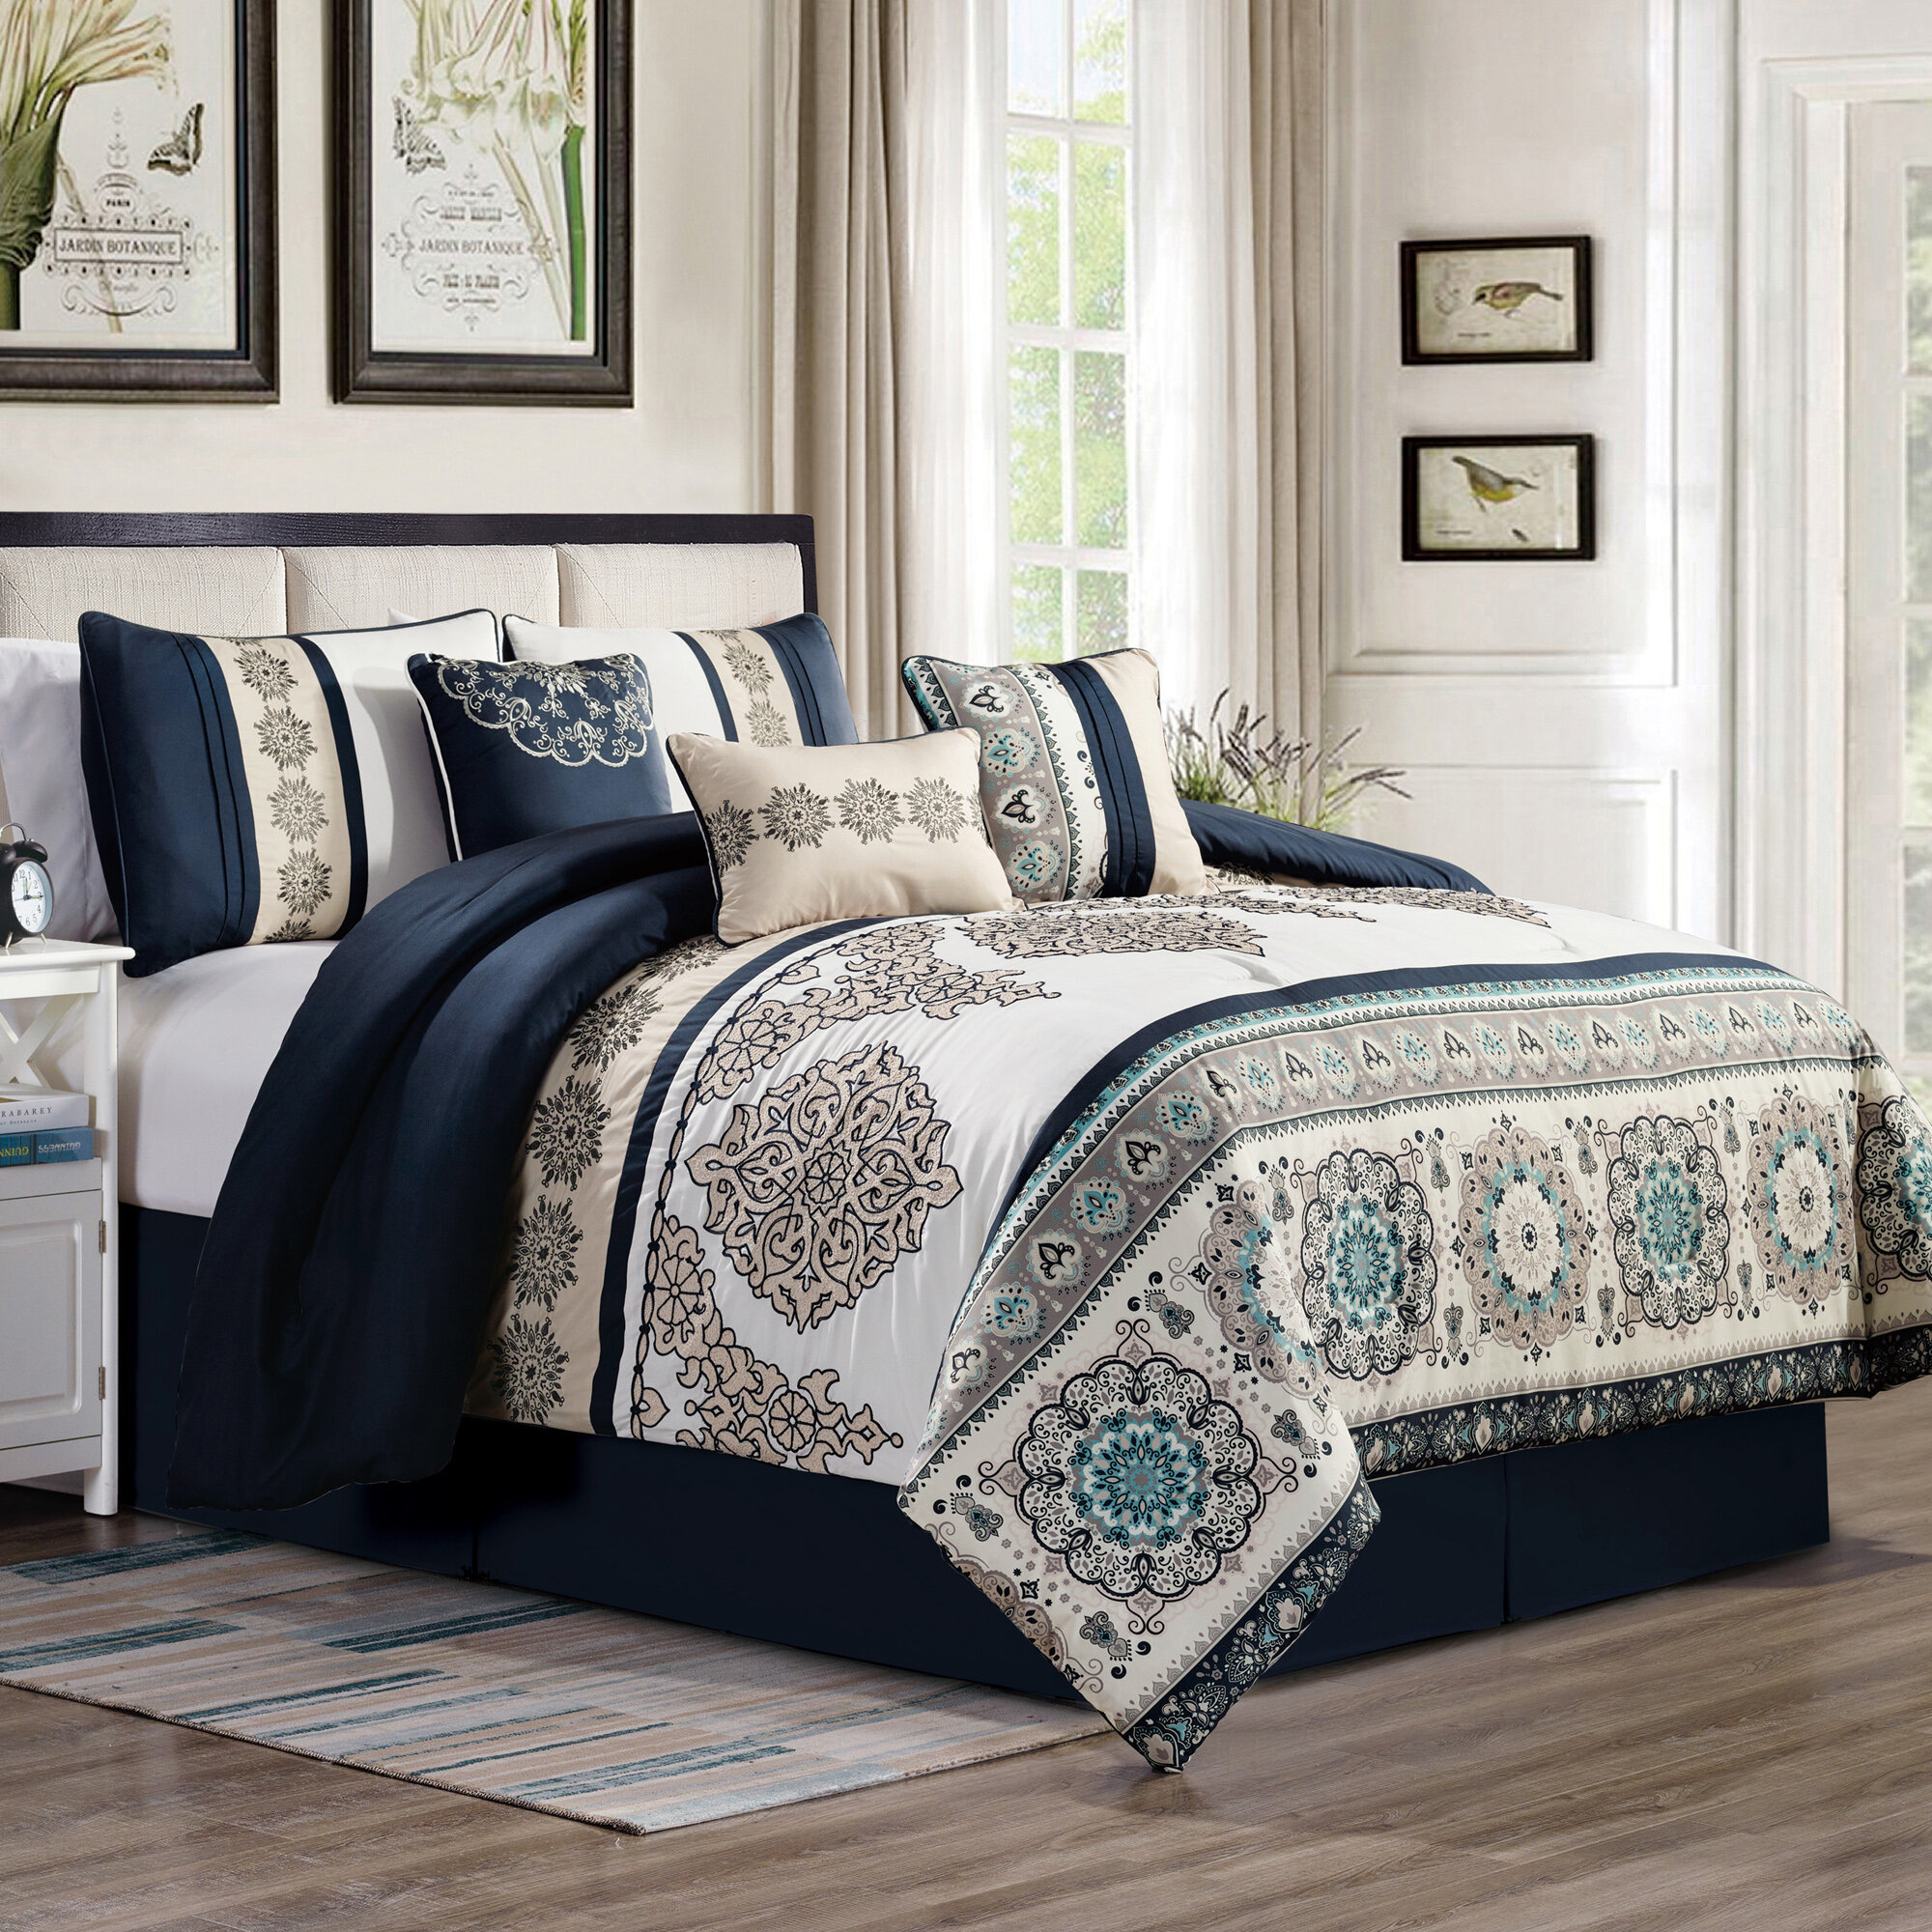 Pillowcases Canora Grey Bedding You Ll Love In 2021 Wayfair